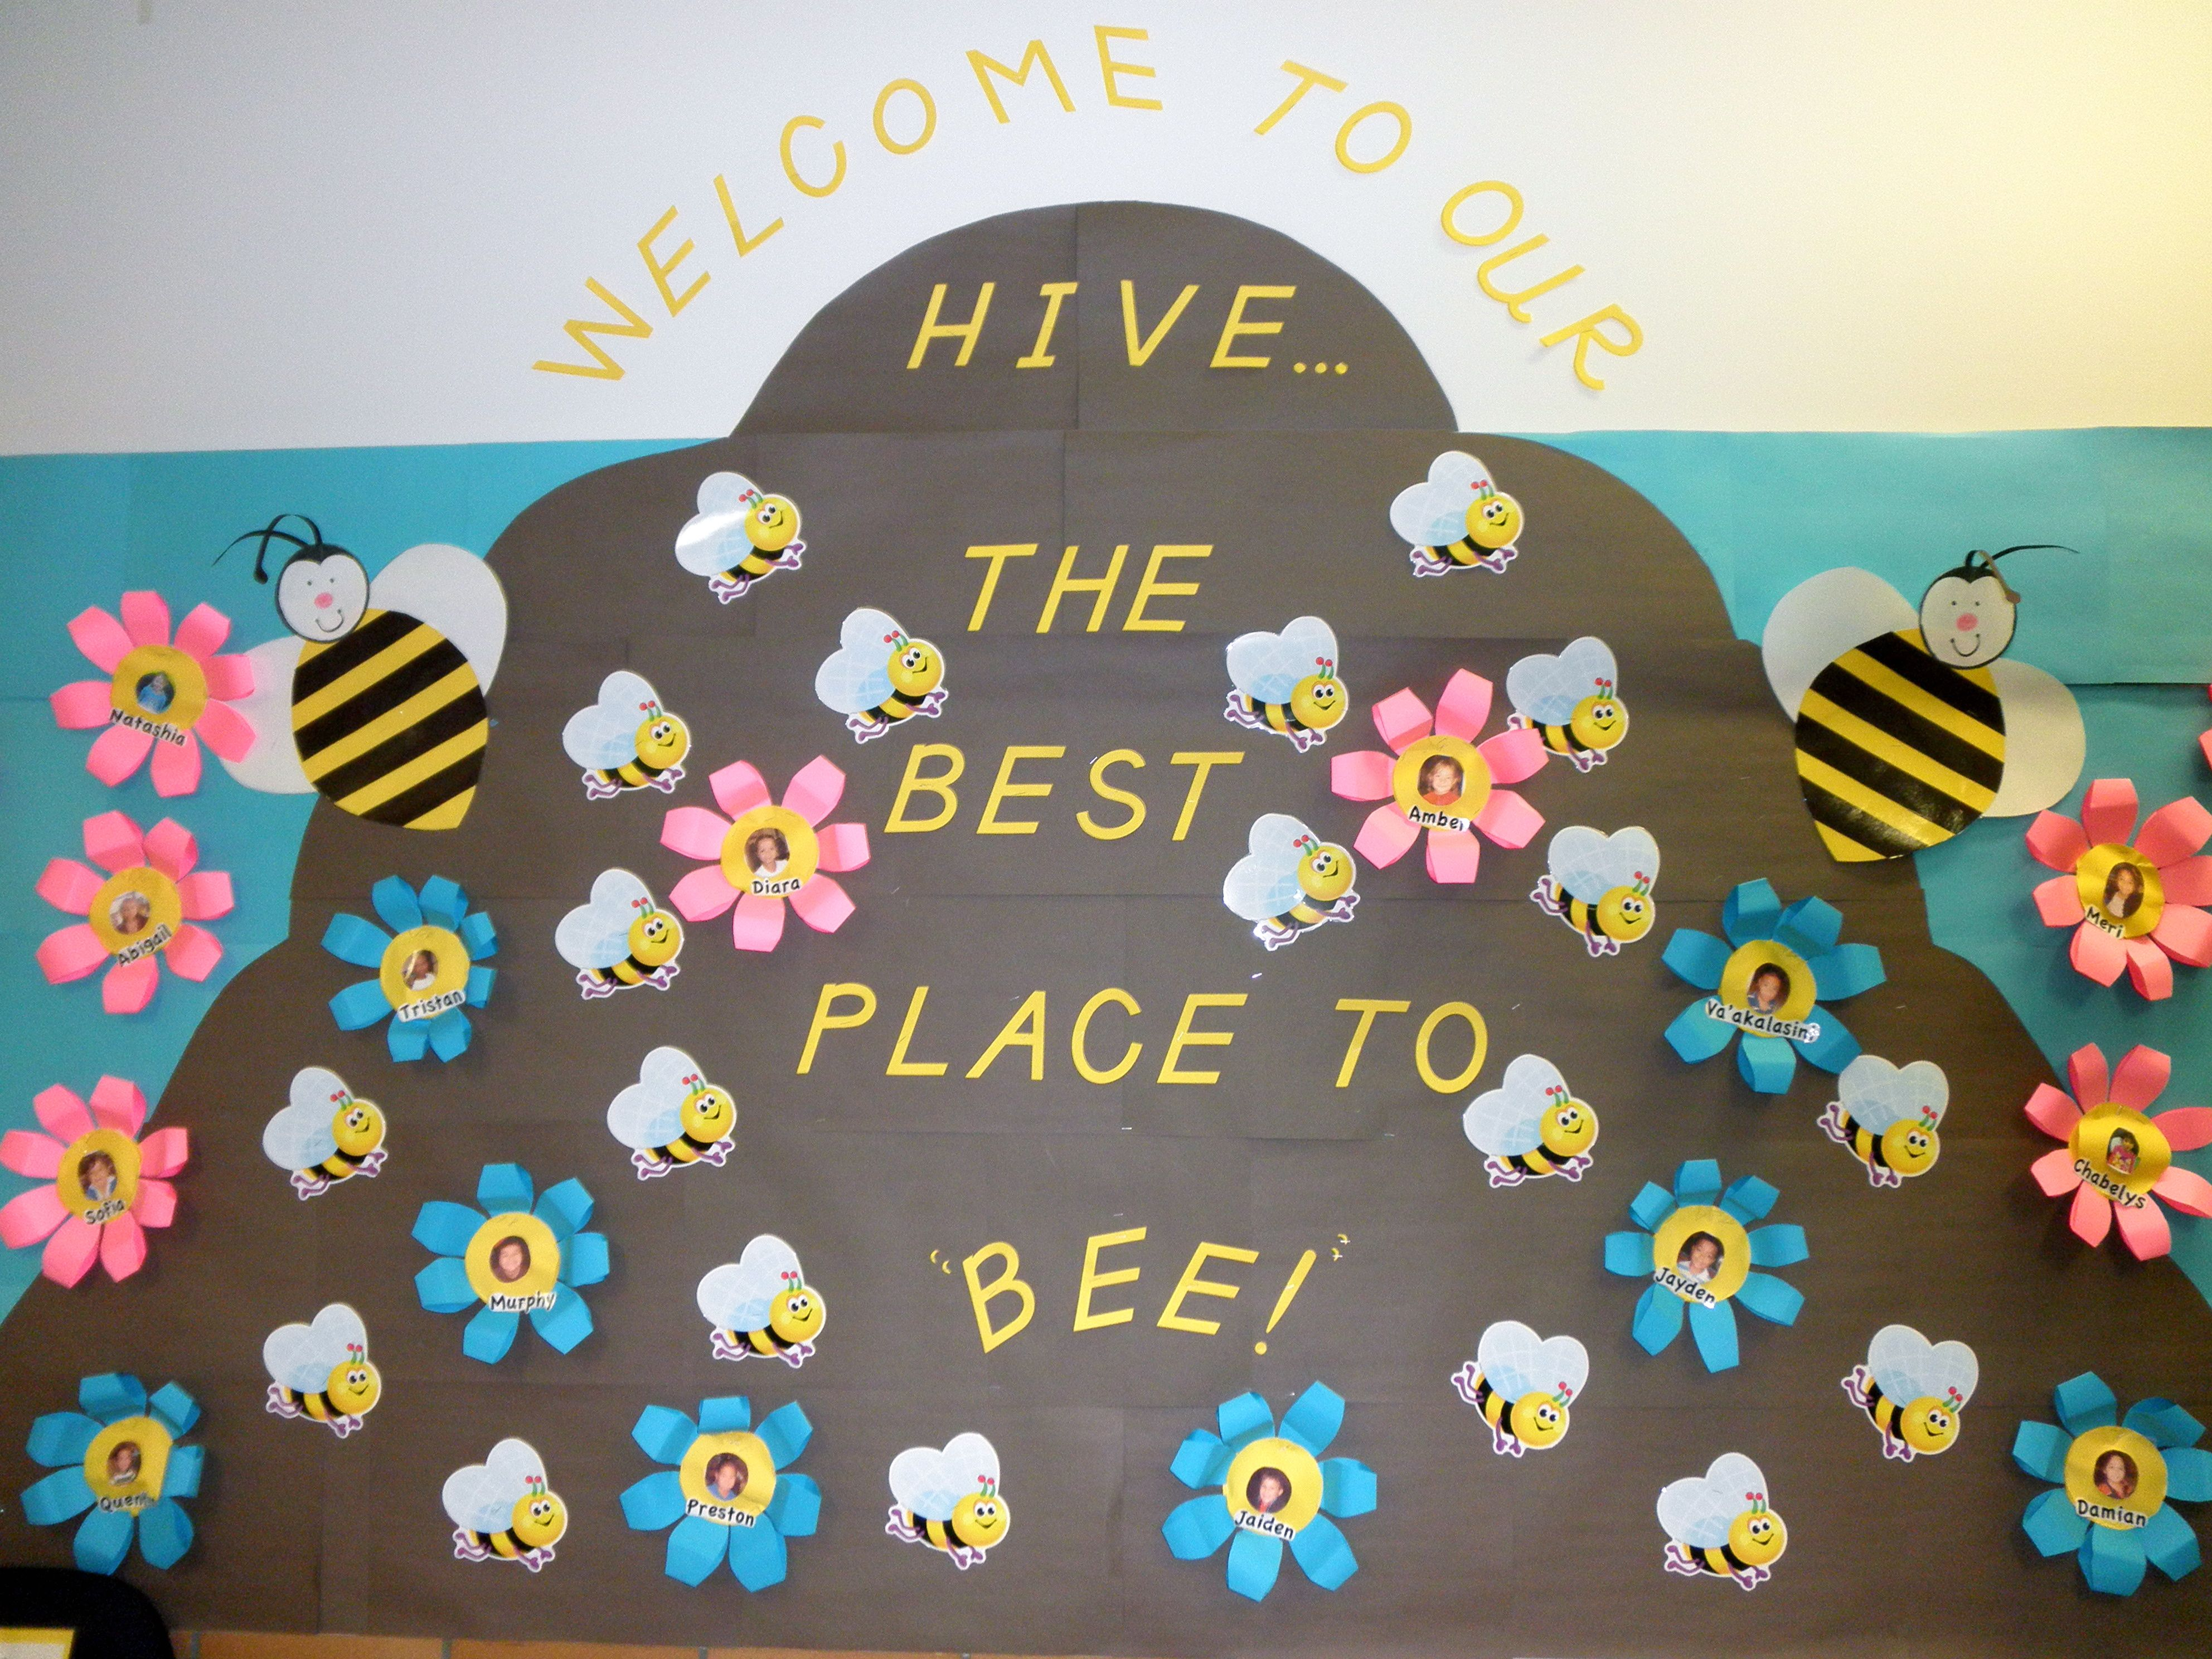 The Best Place To Bee